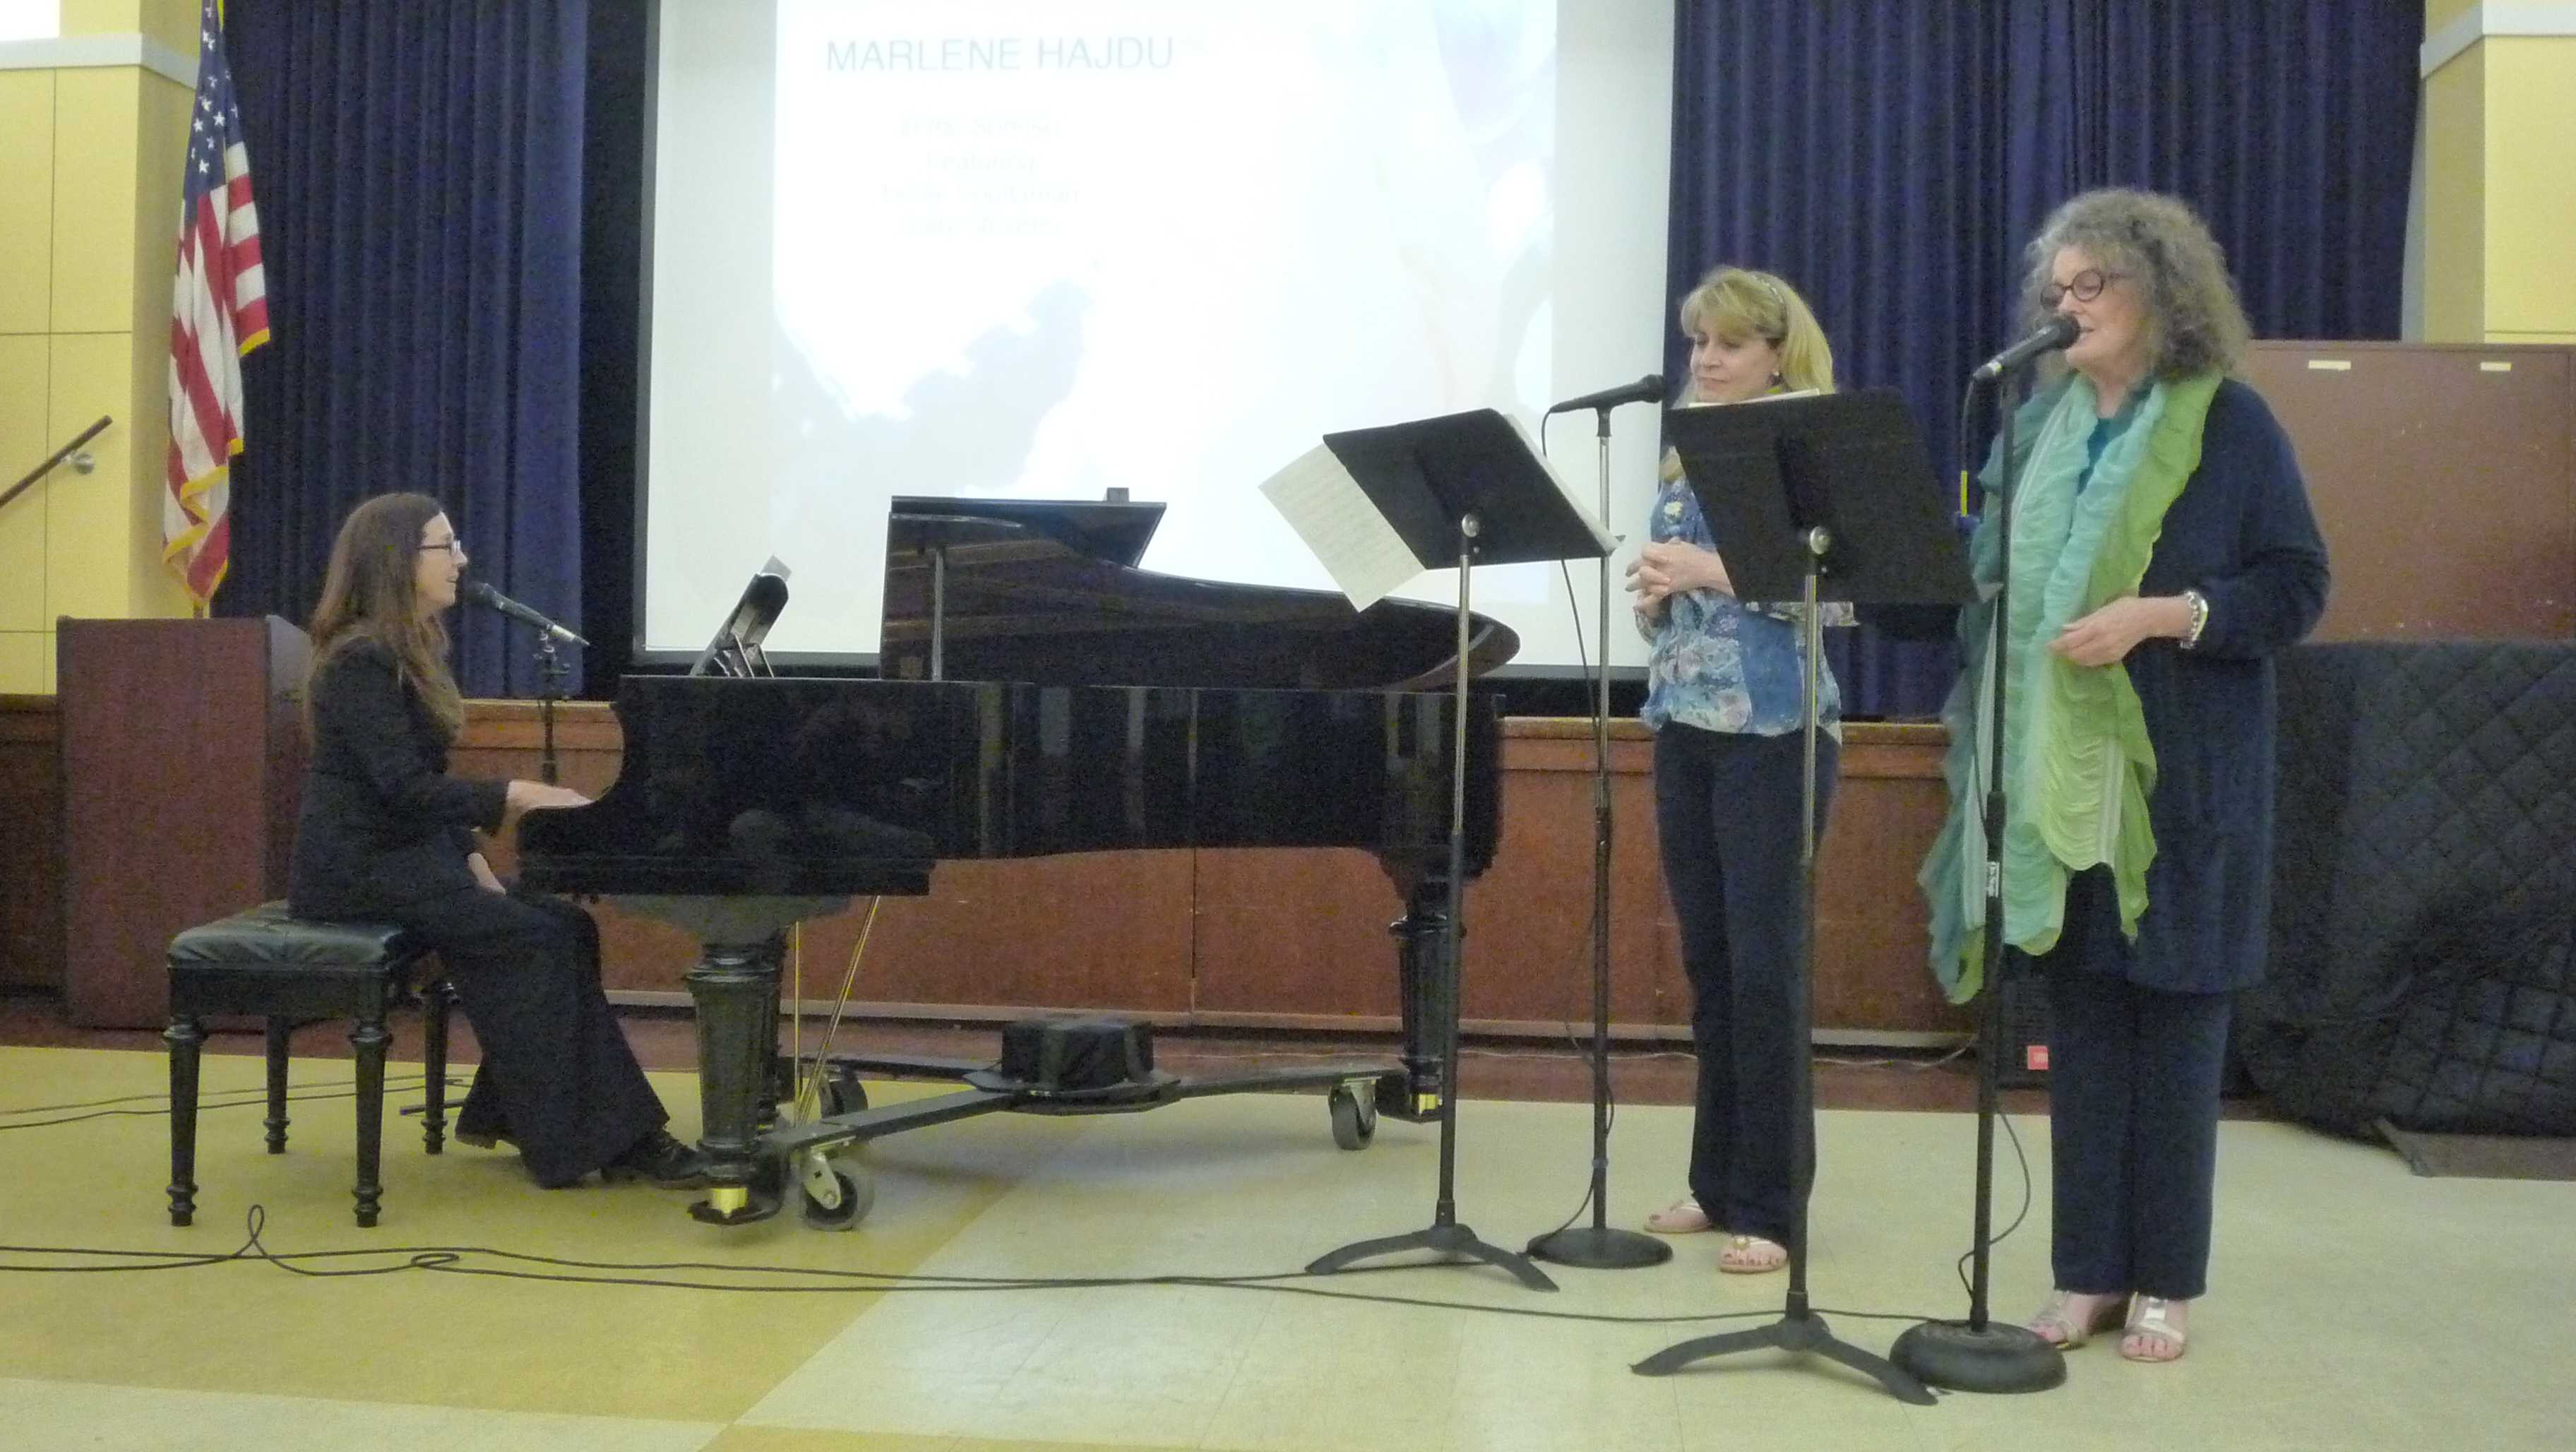 Marlene Hajdu performs a new piece with vocalists Leslie Soultanian and Sally Stevens.